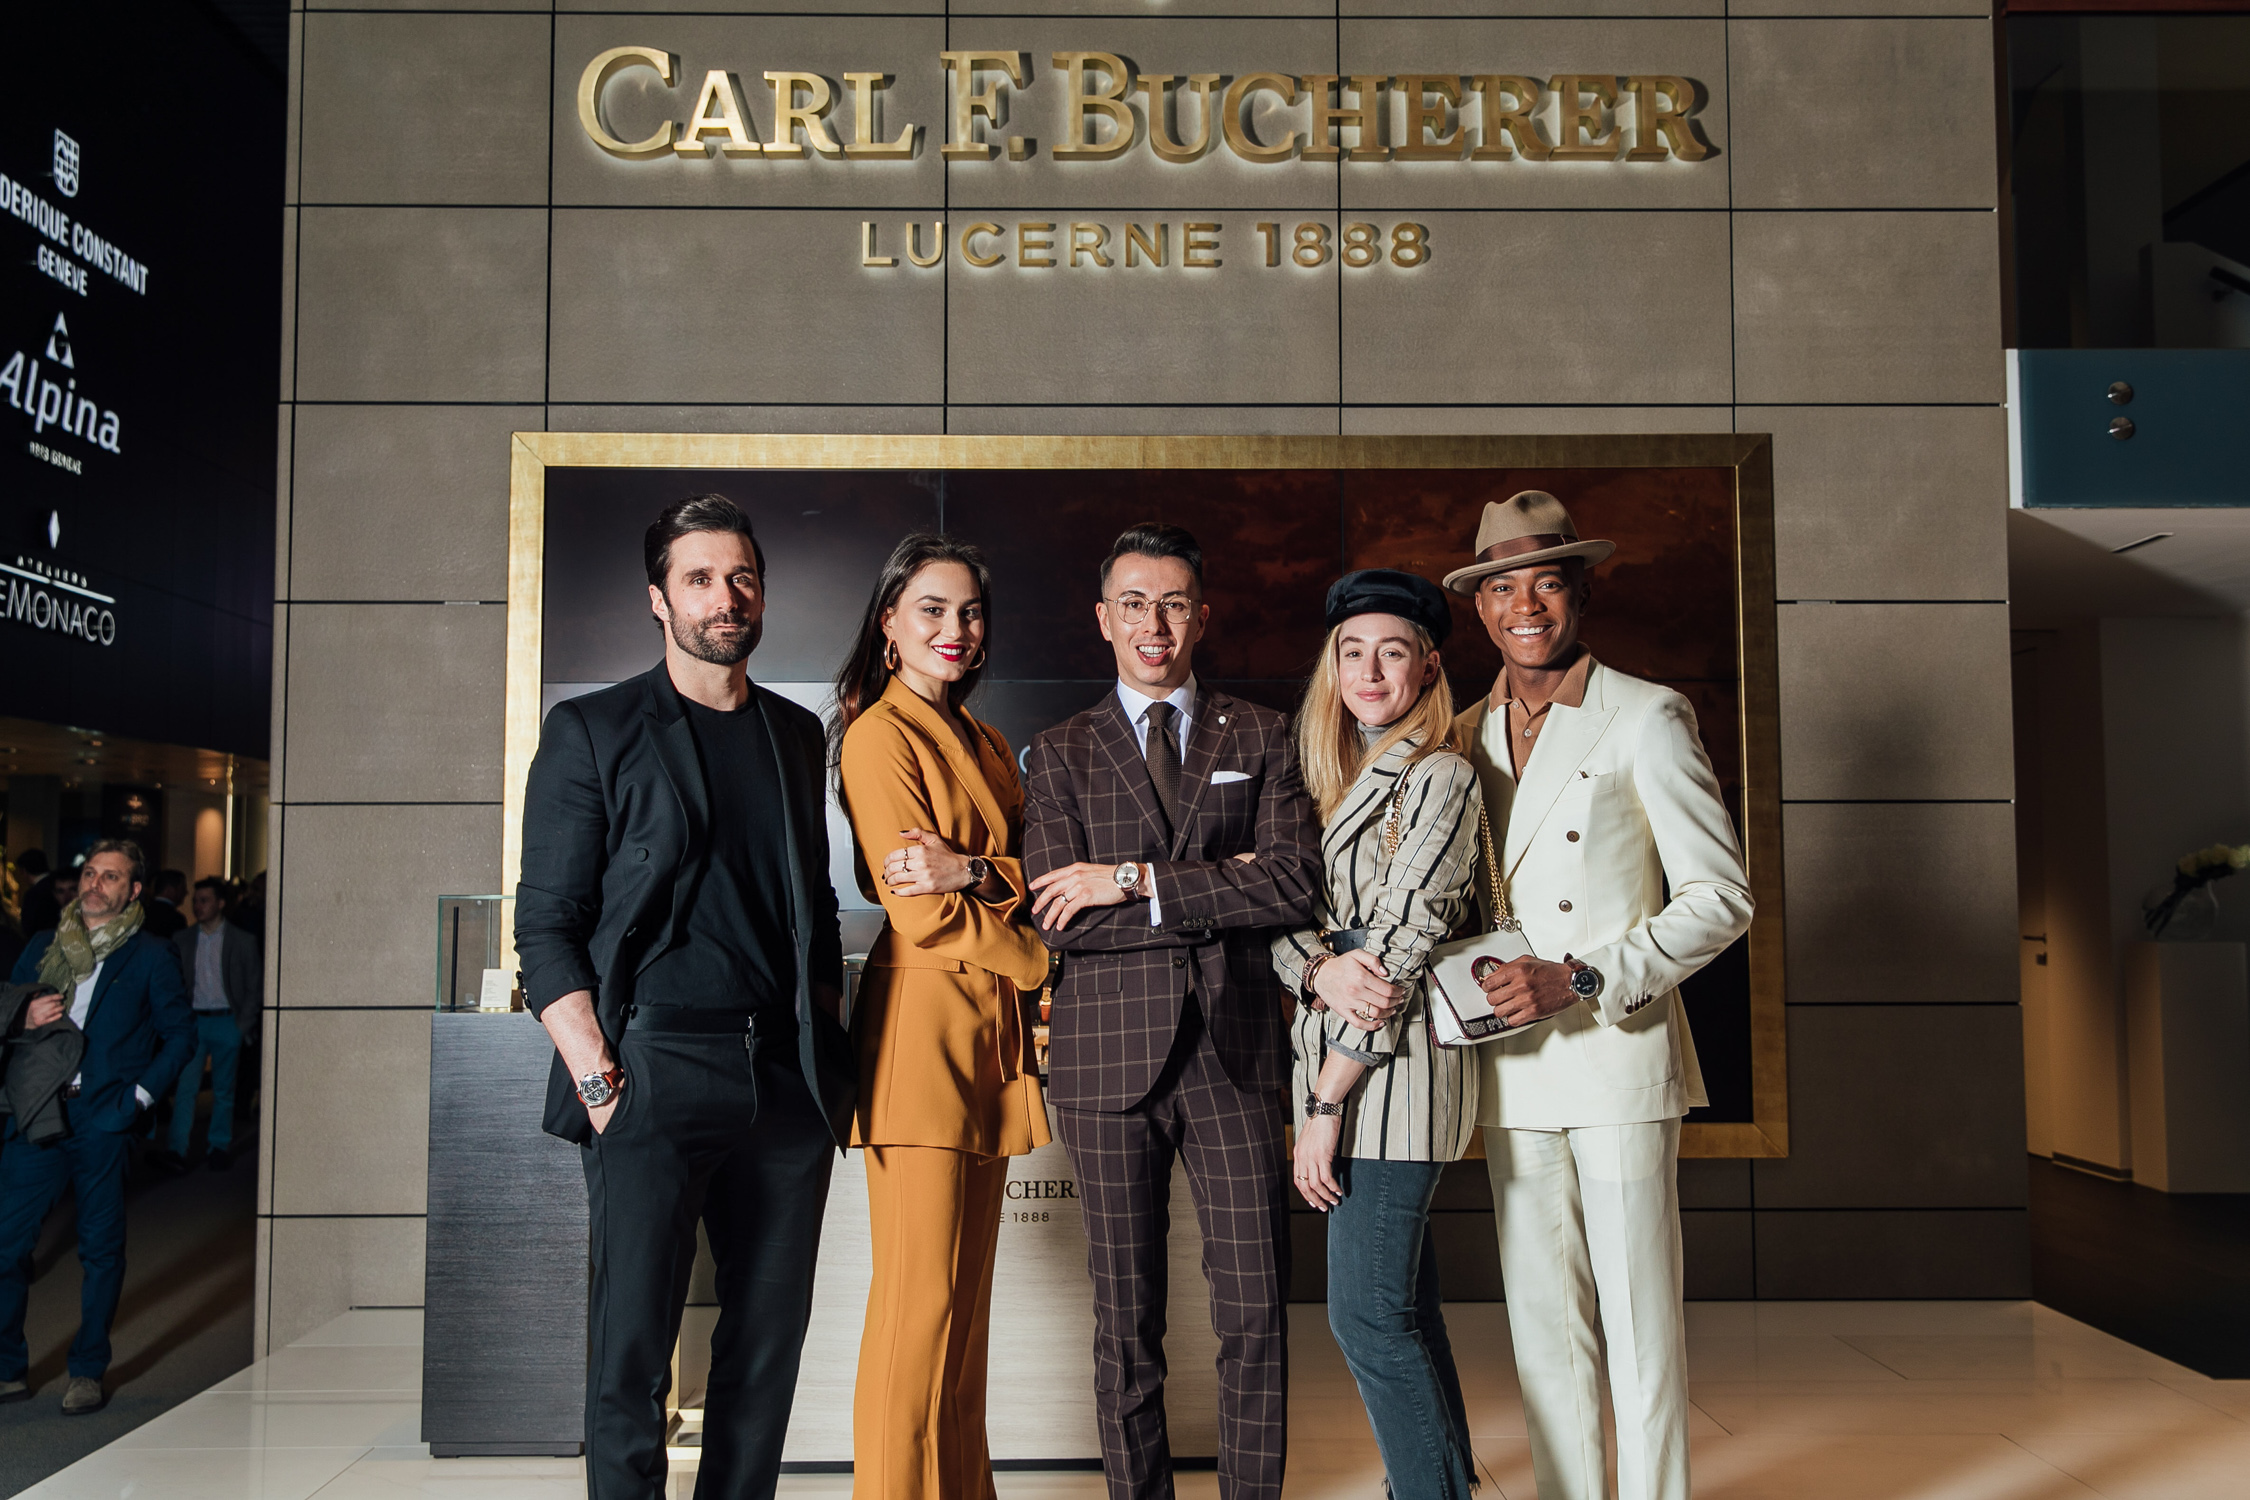 CarlFBucherer_Baselworld16-1